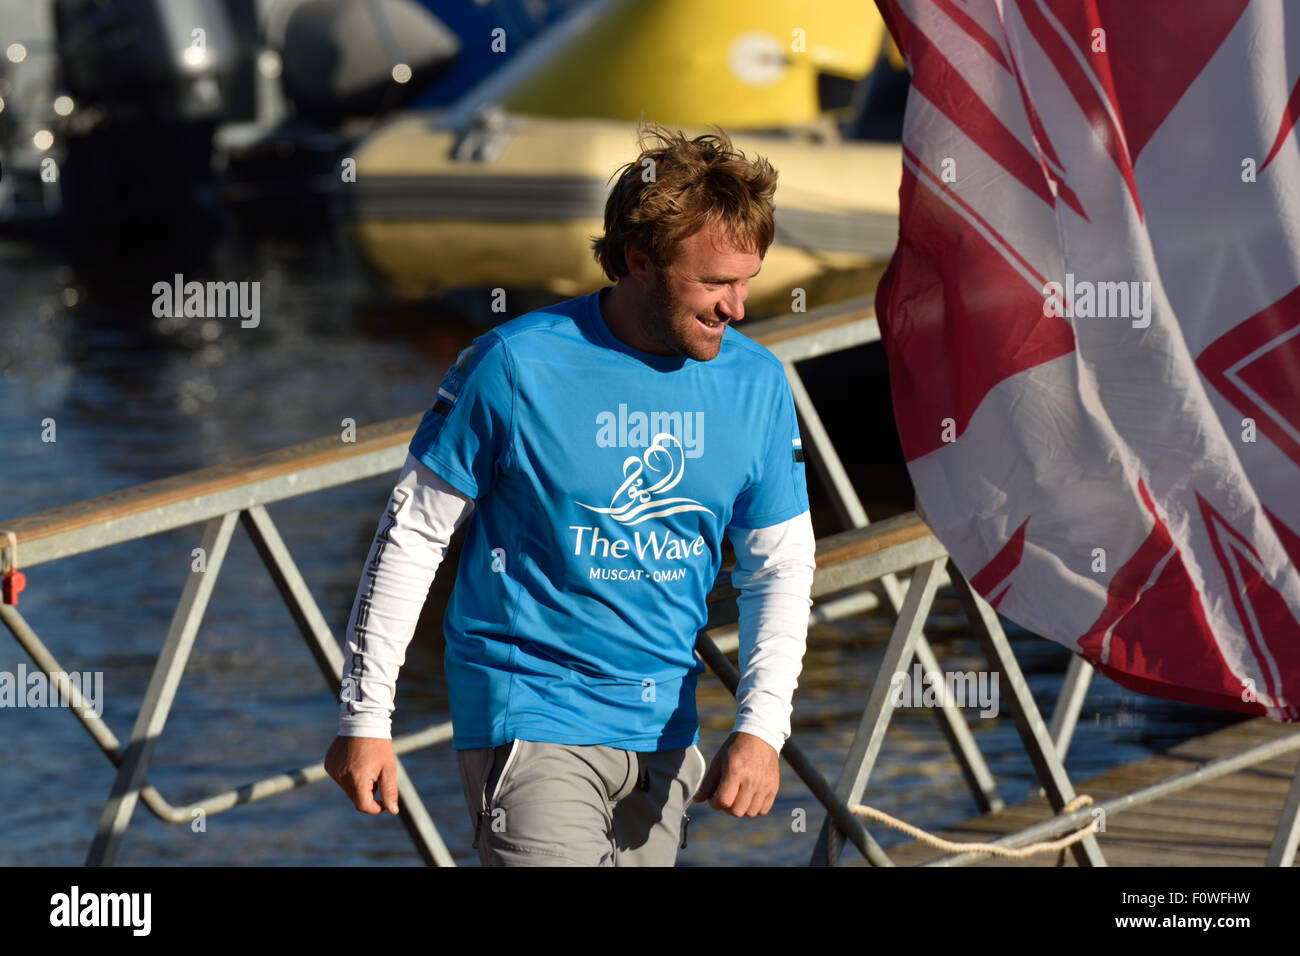 St. Petersburg, Russia, 21st August, 2015. Skipper of The Wave, Muscat sailing team Leigh McMillan from United Kingdom Stock Photo